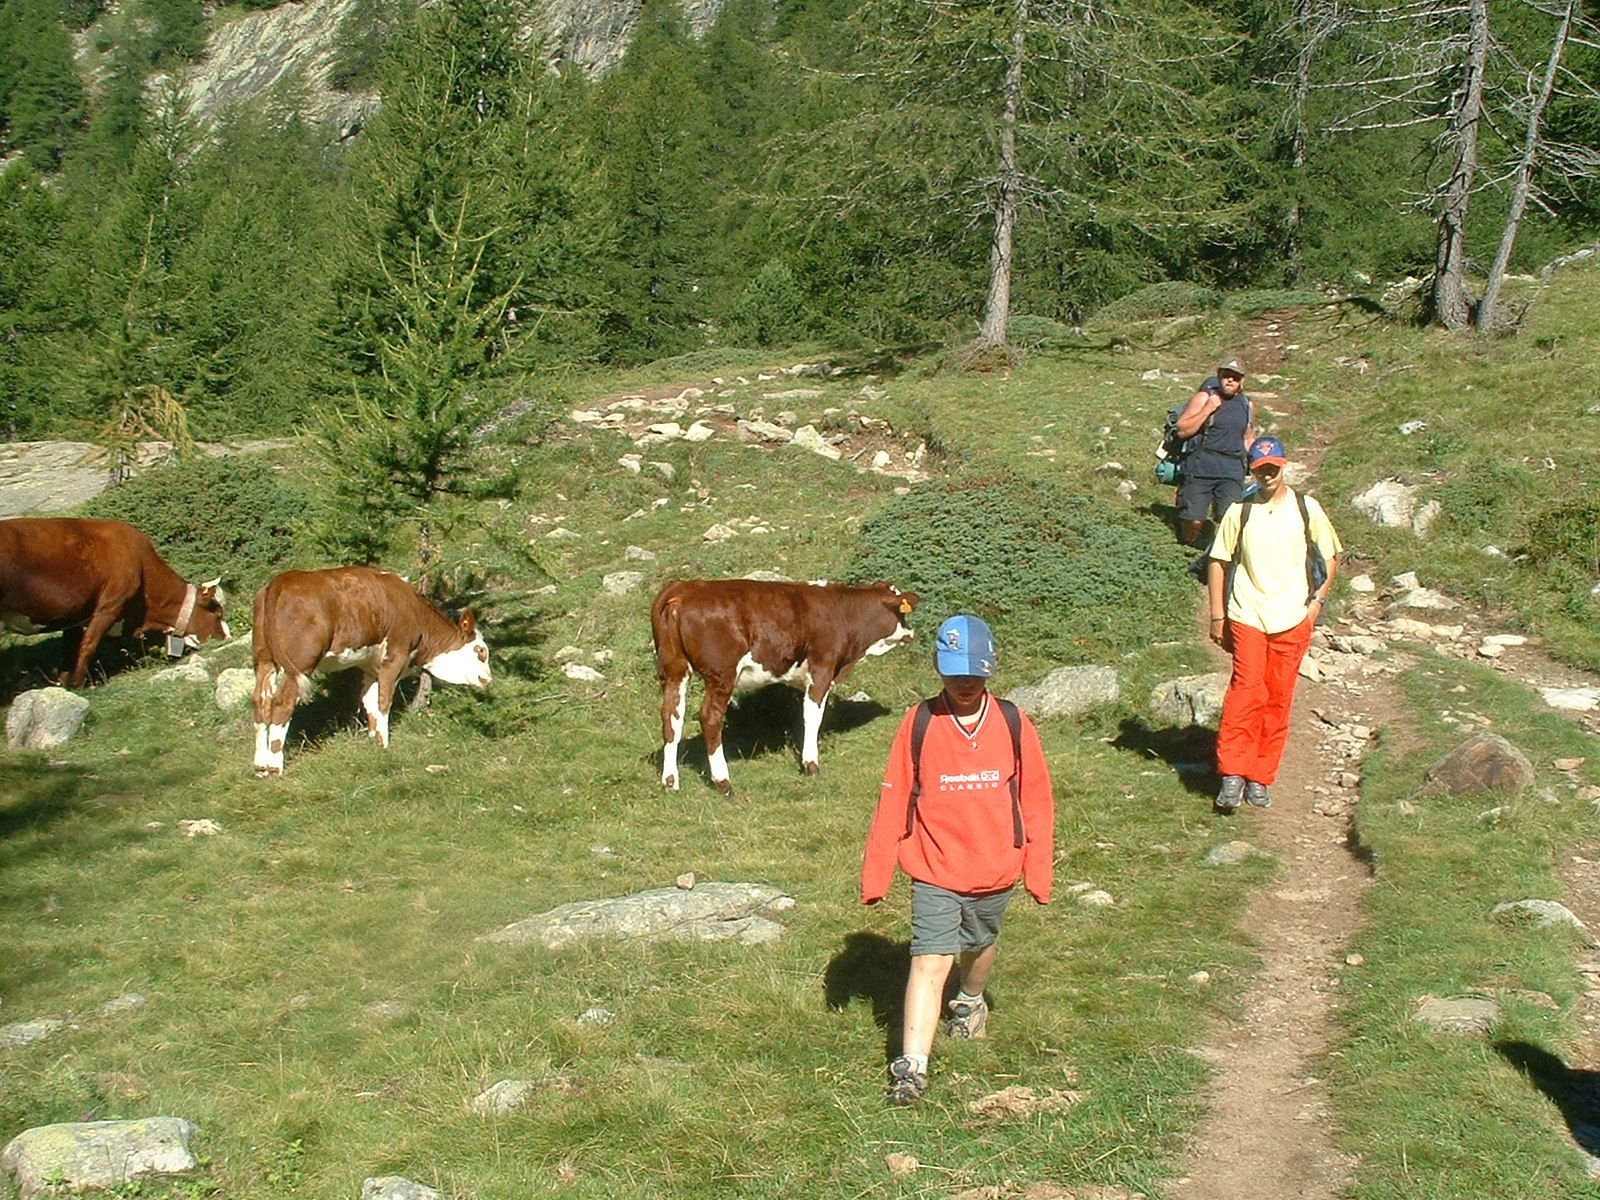 Photo activites nature - rencontre ados et vaches mercantour